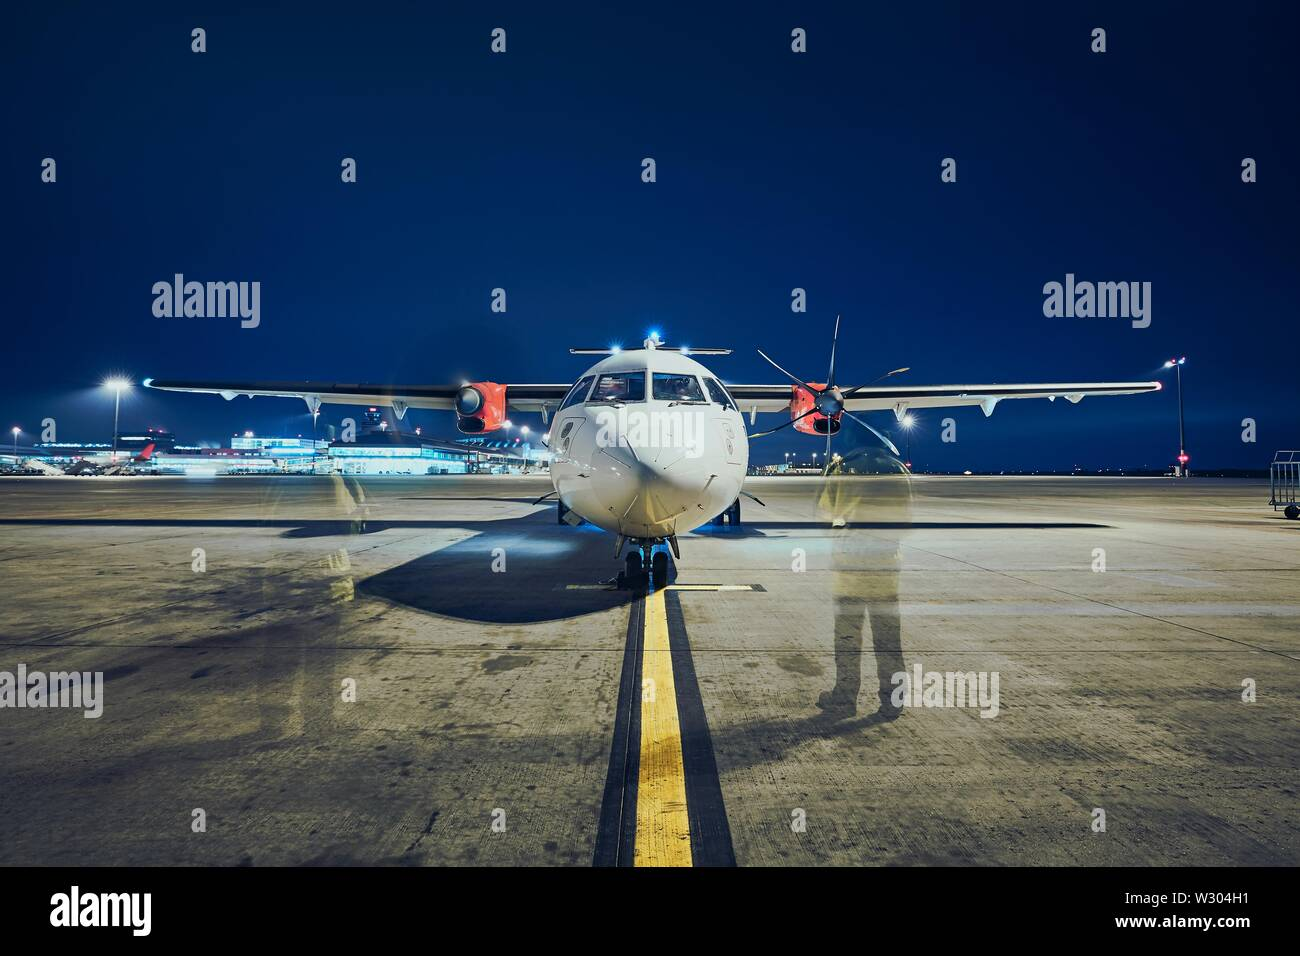 Starting of engines of turboprop airplane before take off against airport at night (long exposure). - Stock Image